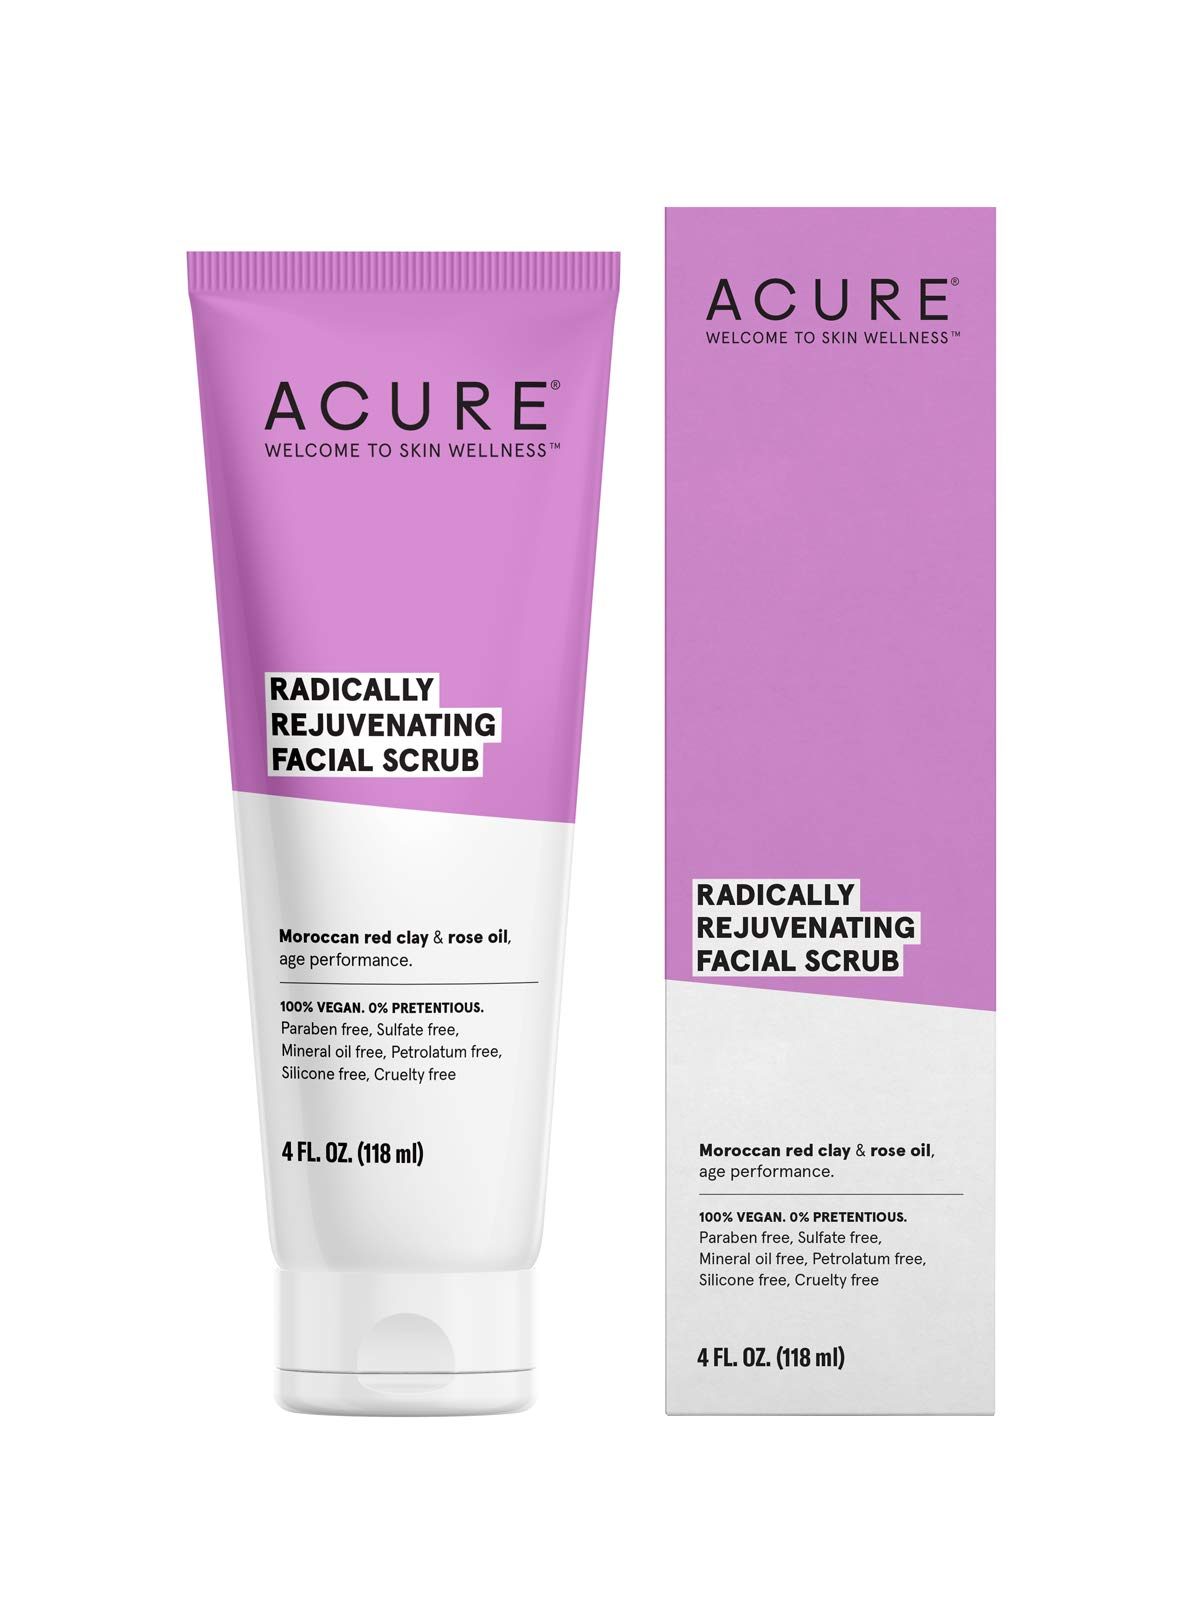 ACURE Radically Rejuvenating Facial Scrub, 4 Fl. Oz. (Packaging May Vary) by Acure